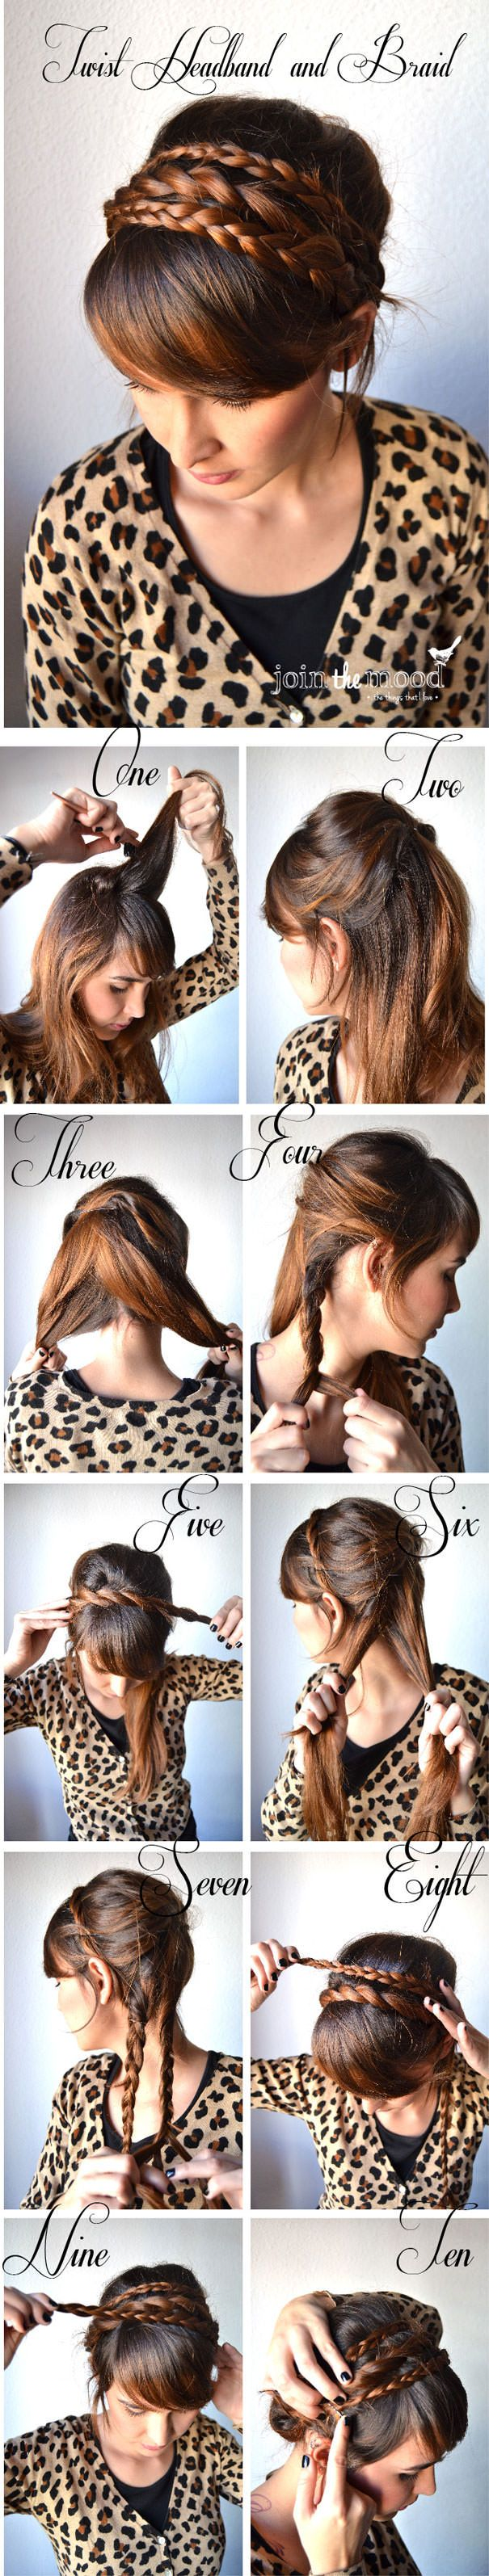 The Braided Headband: Simple, Chic and Girly | Latest-Hairstyles.com